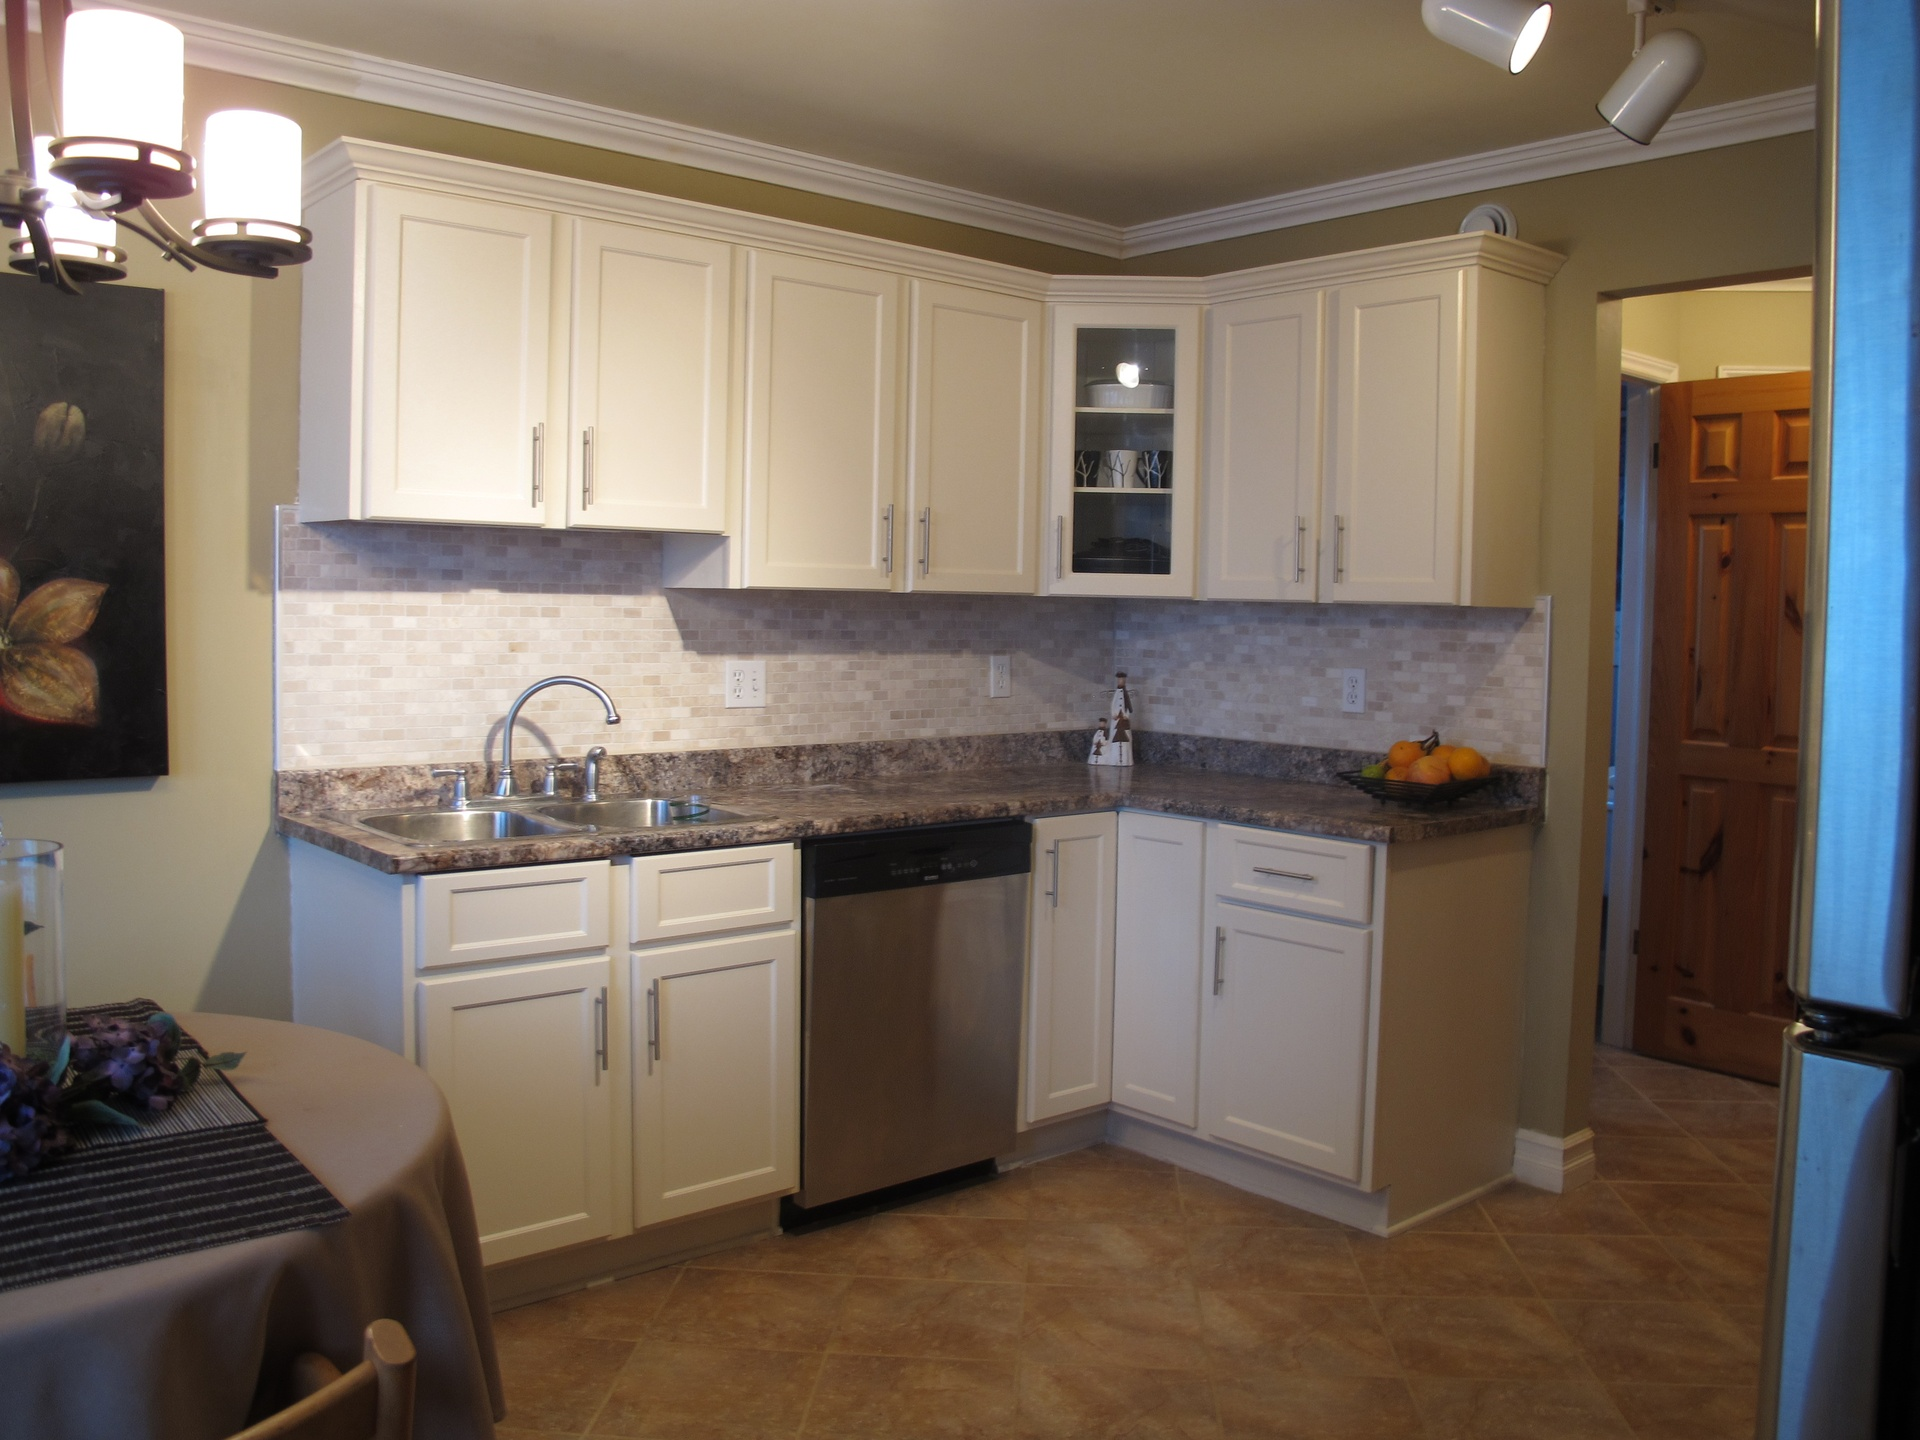 Merveilleux How To Estimate Average Kitchen Cabinet Refacing Cost